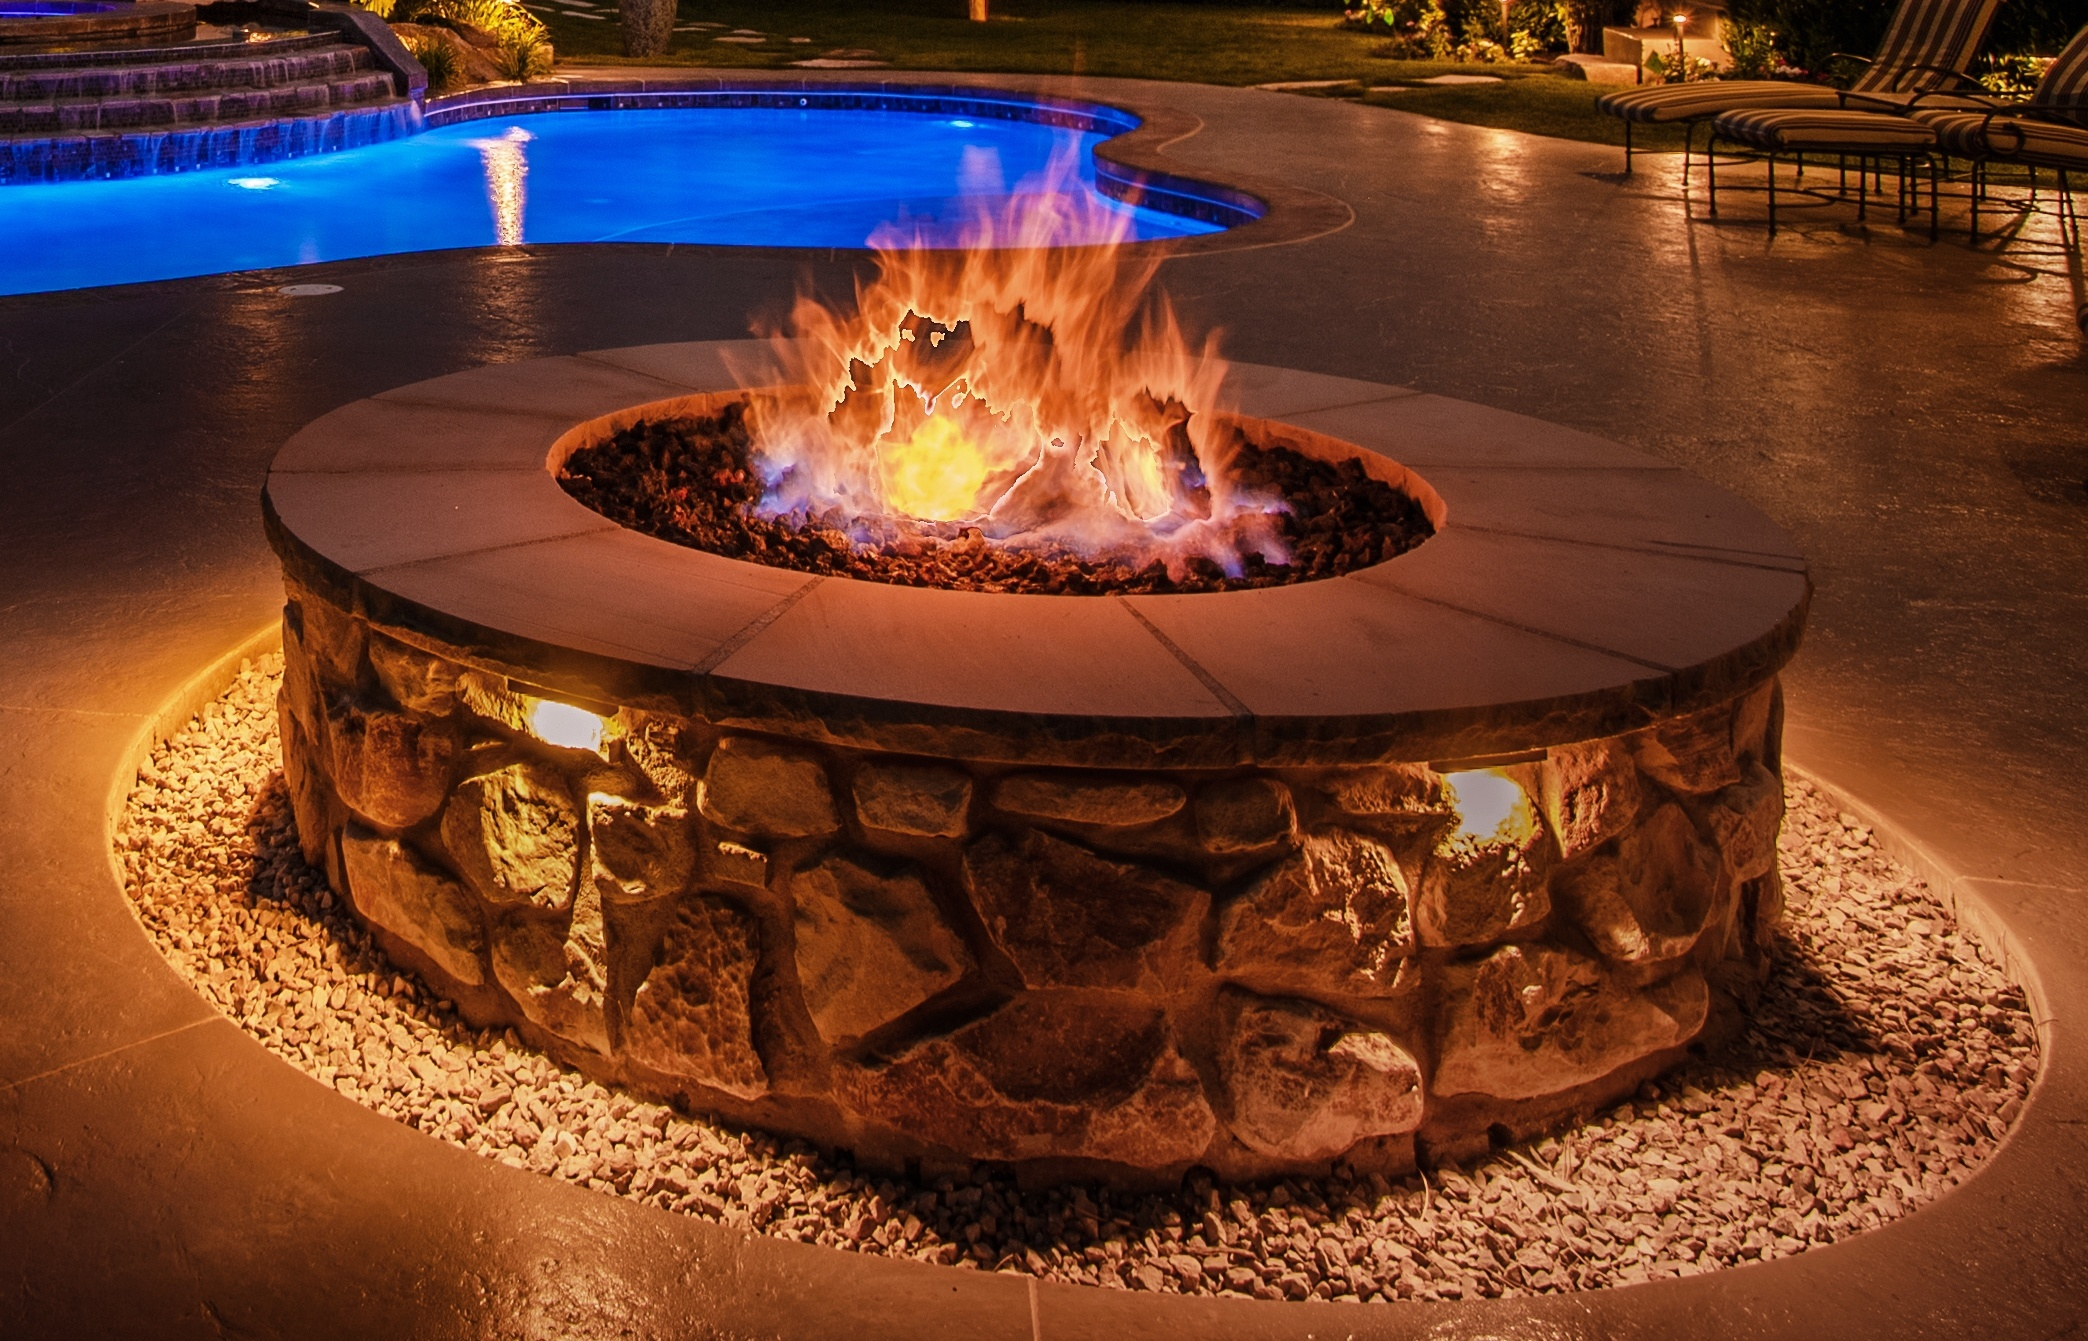 Fire pit hardscape lighting ideas .jpg